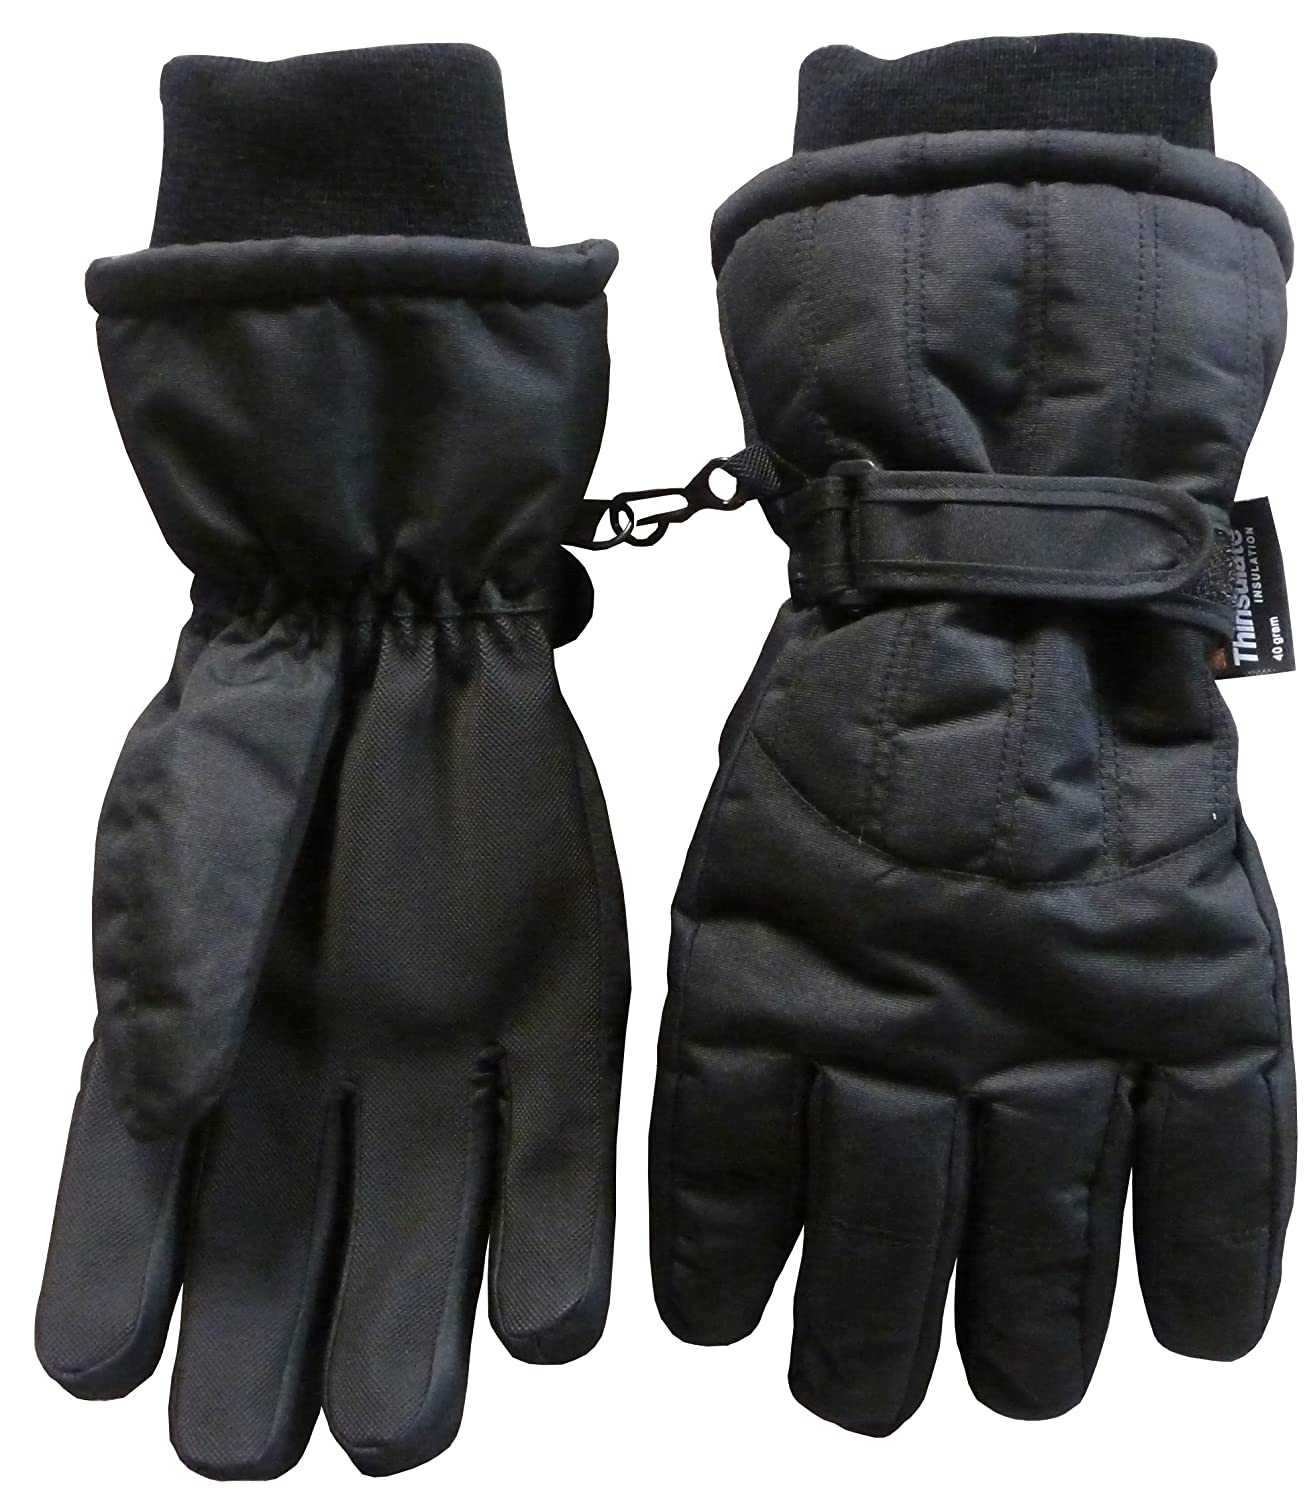 N'Ice Caps Adults Unisex Thinsulate and Waterproof Bulky Ski Gloves with Ridges N'Ice Caps Accessories